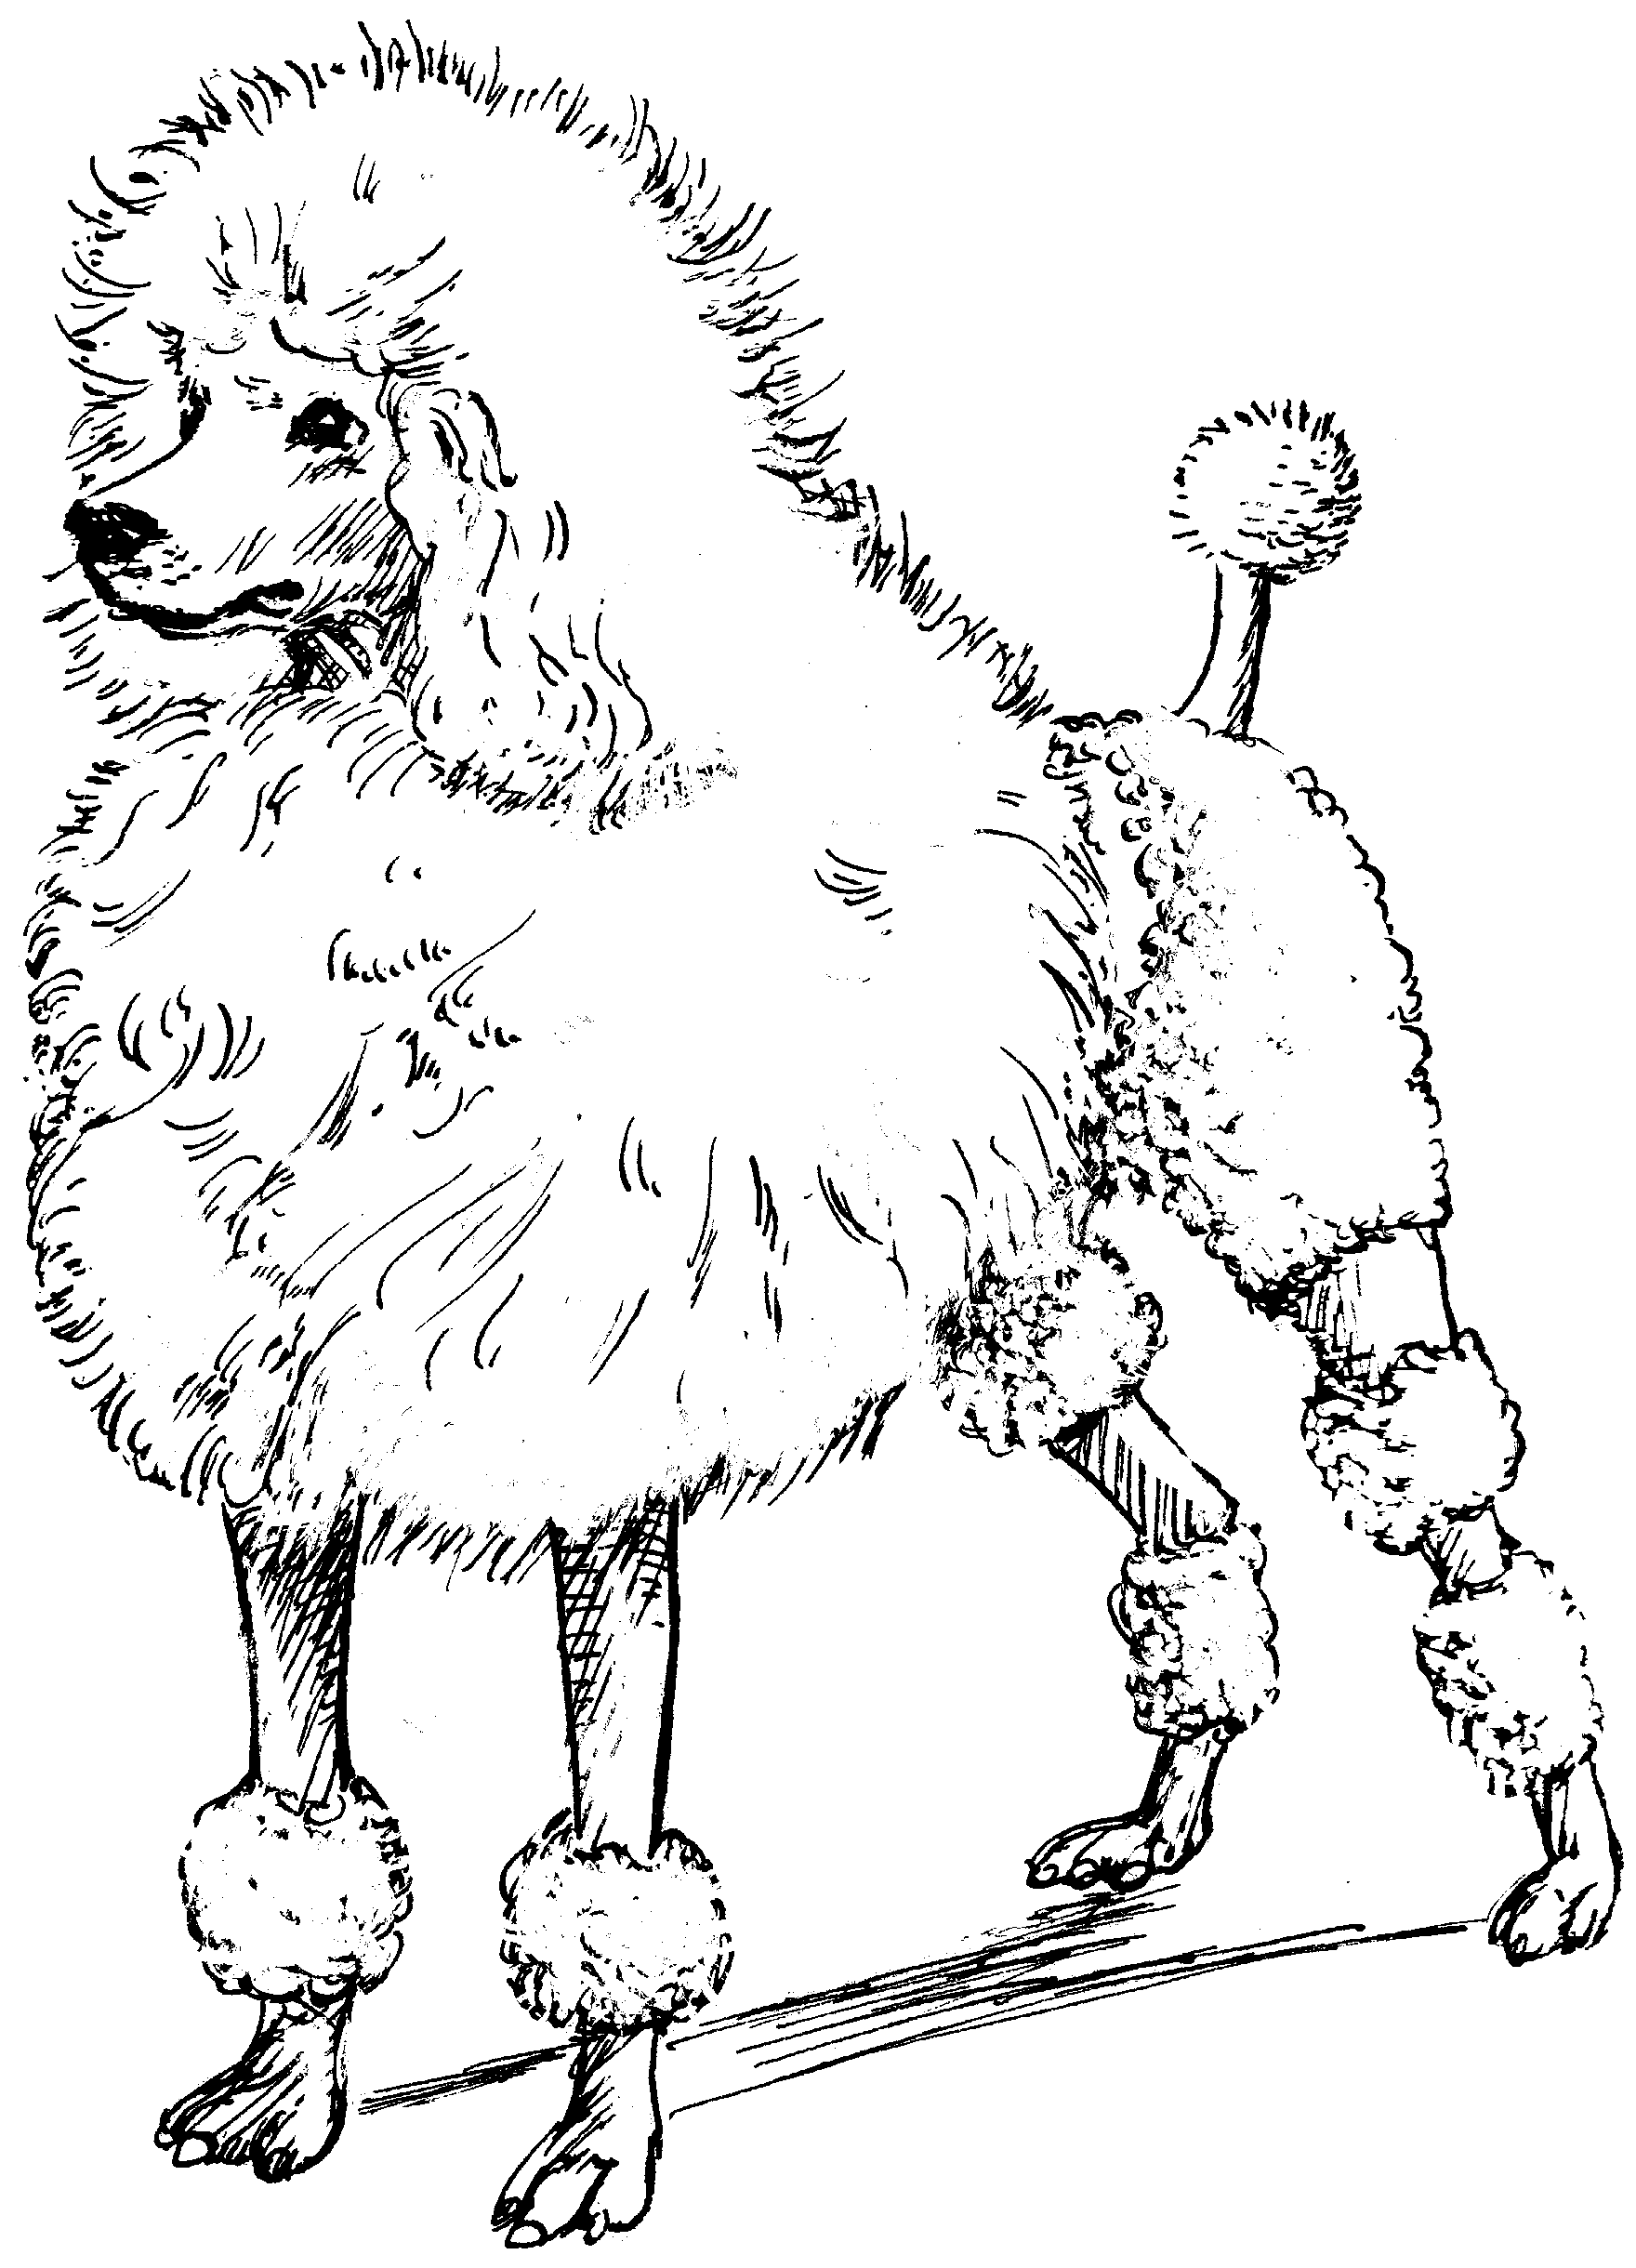 Drawn poodle clip Printable Clip Full Size Image